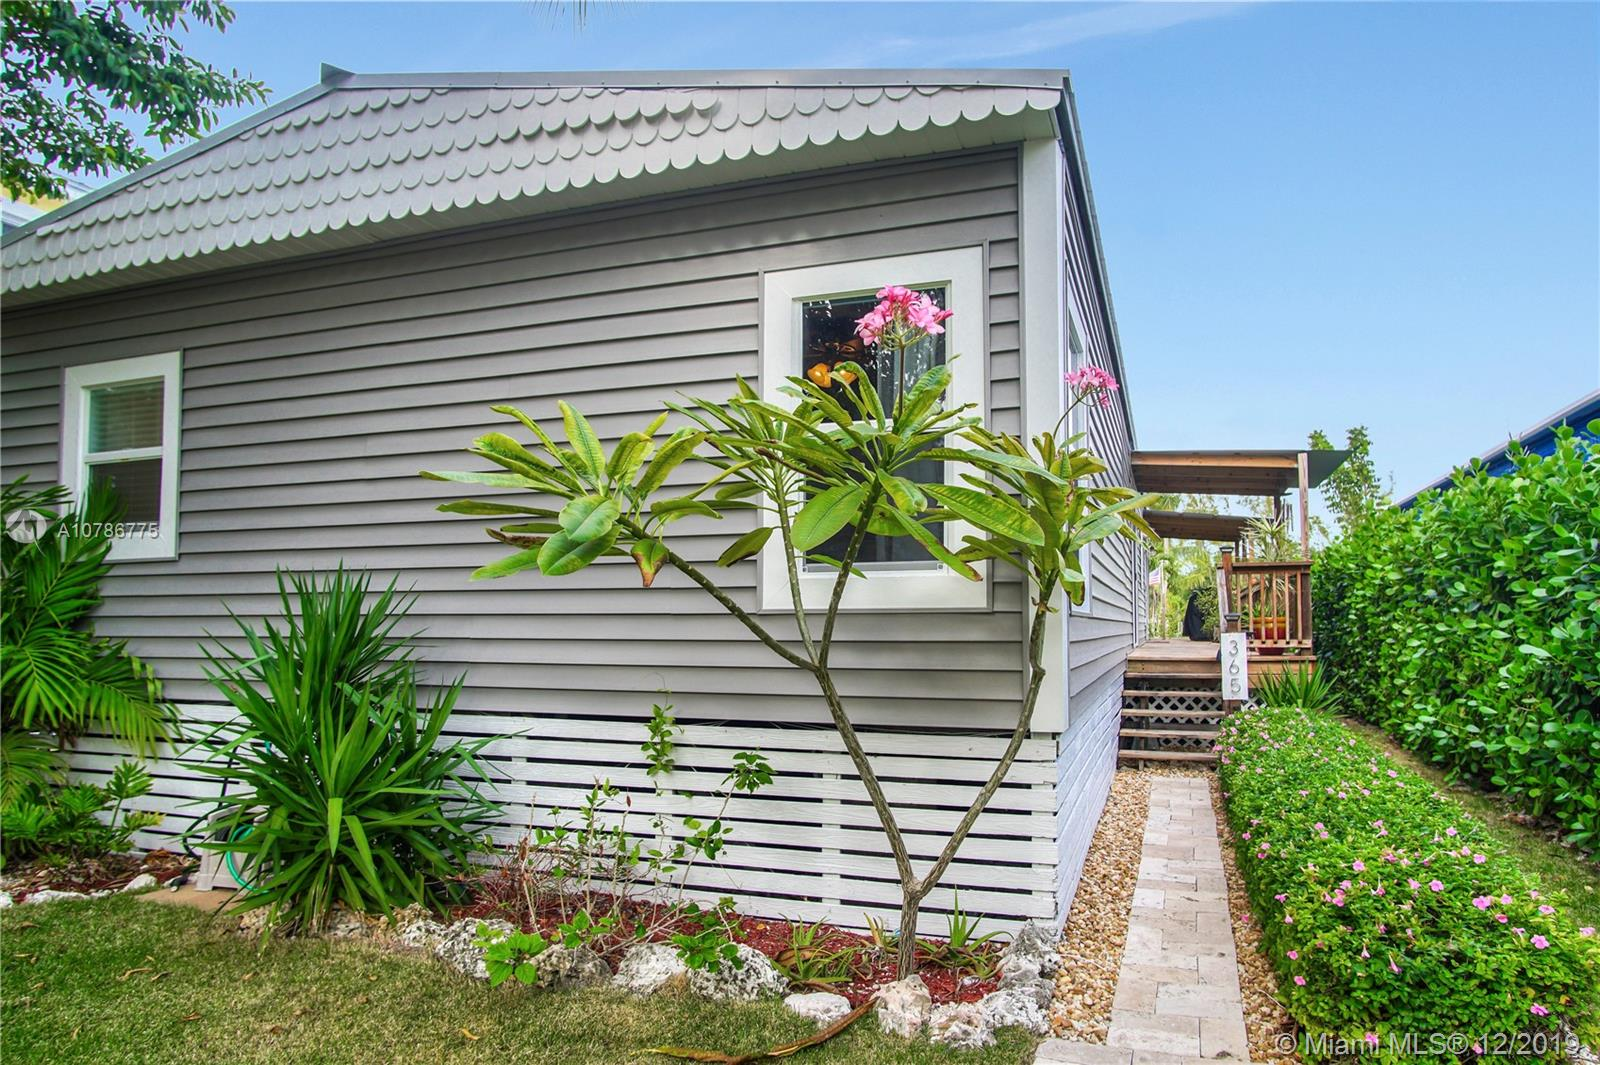 365 Crane St, Key Largo, FL 33037 - Key Largo, FL real estate listing